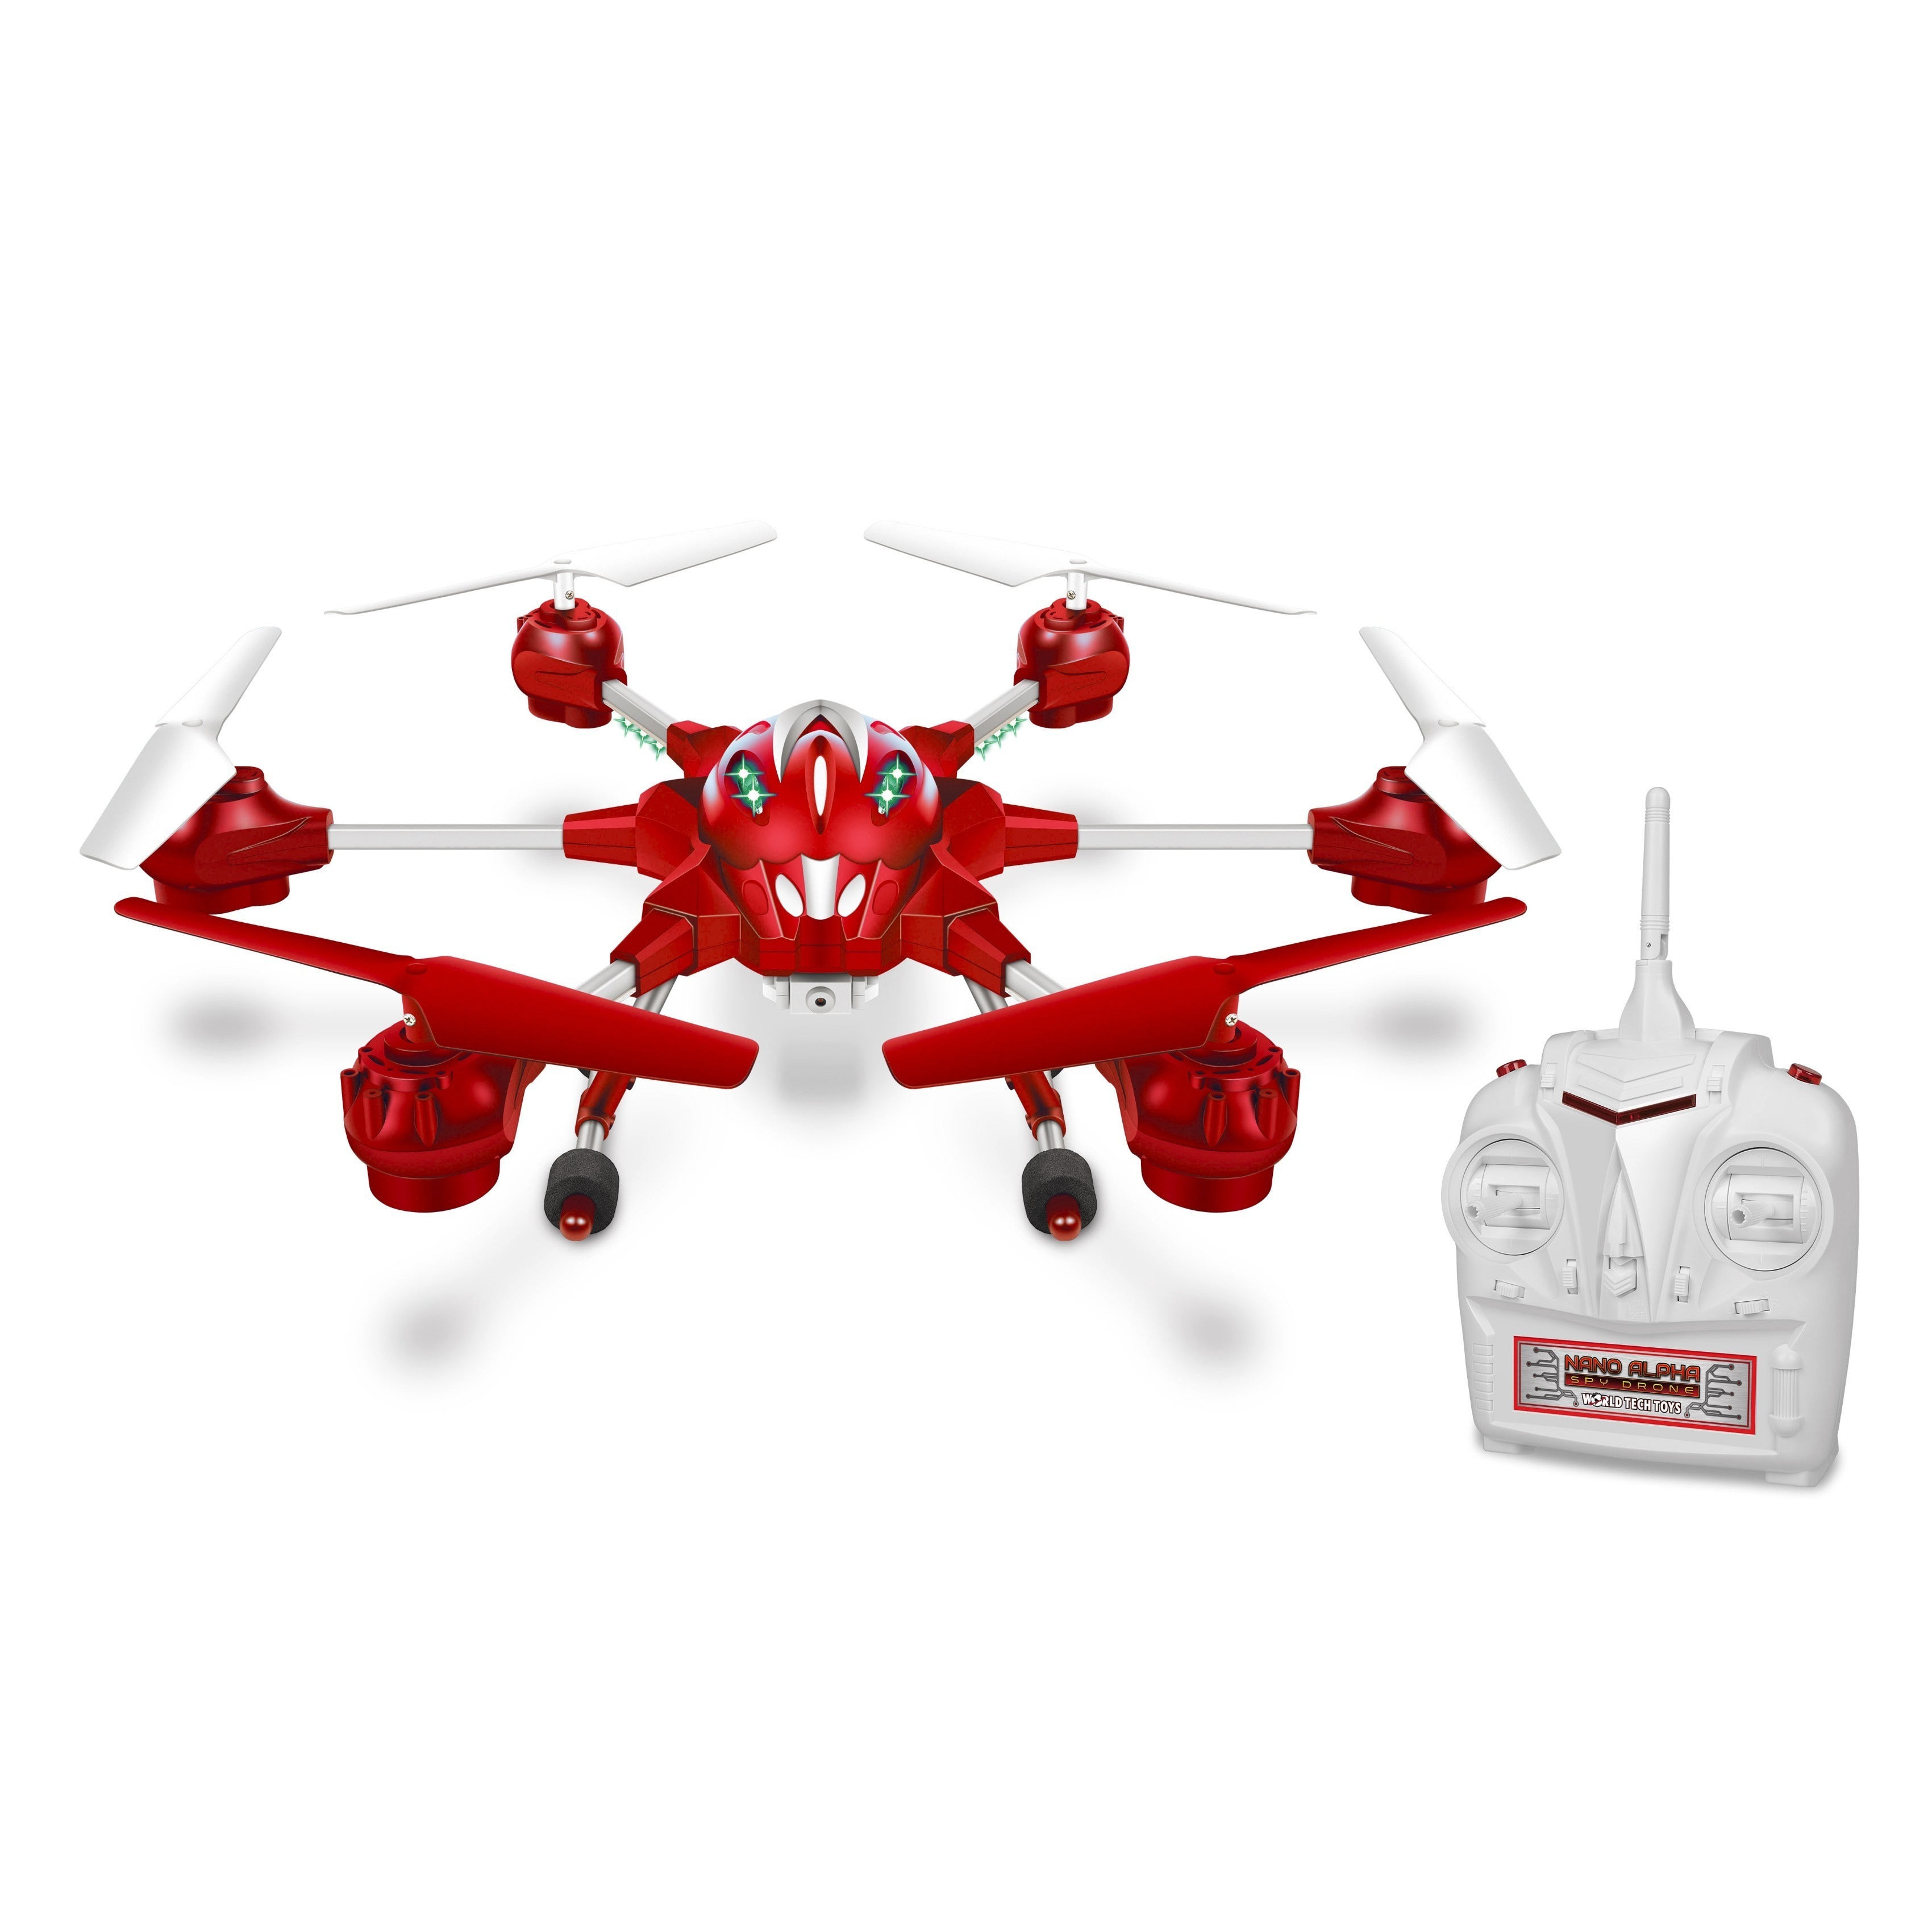 World Tech Toys Nano Alpha 2.4 Ghz 4.5-channel Picture and Video Remote Control Quadcopter Spy Drone by World Tech Toys